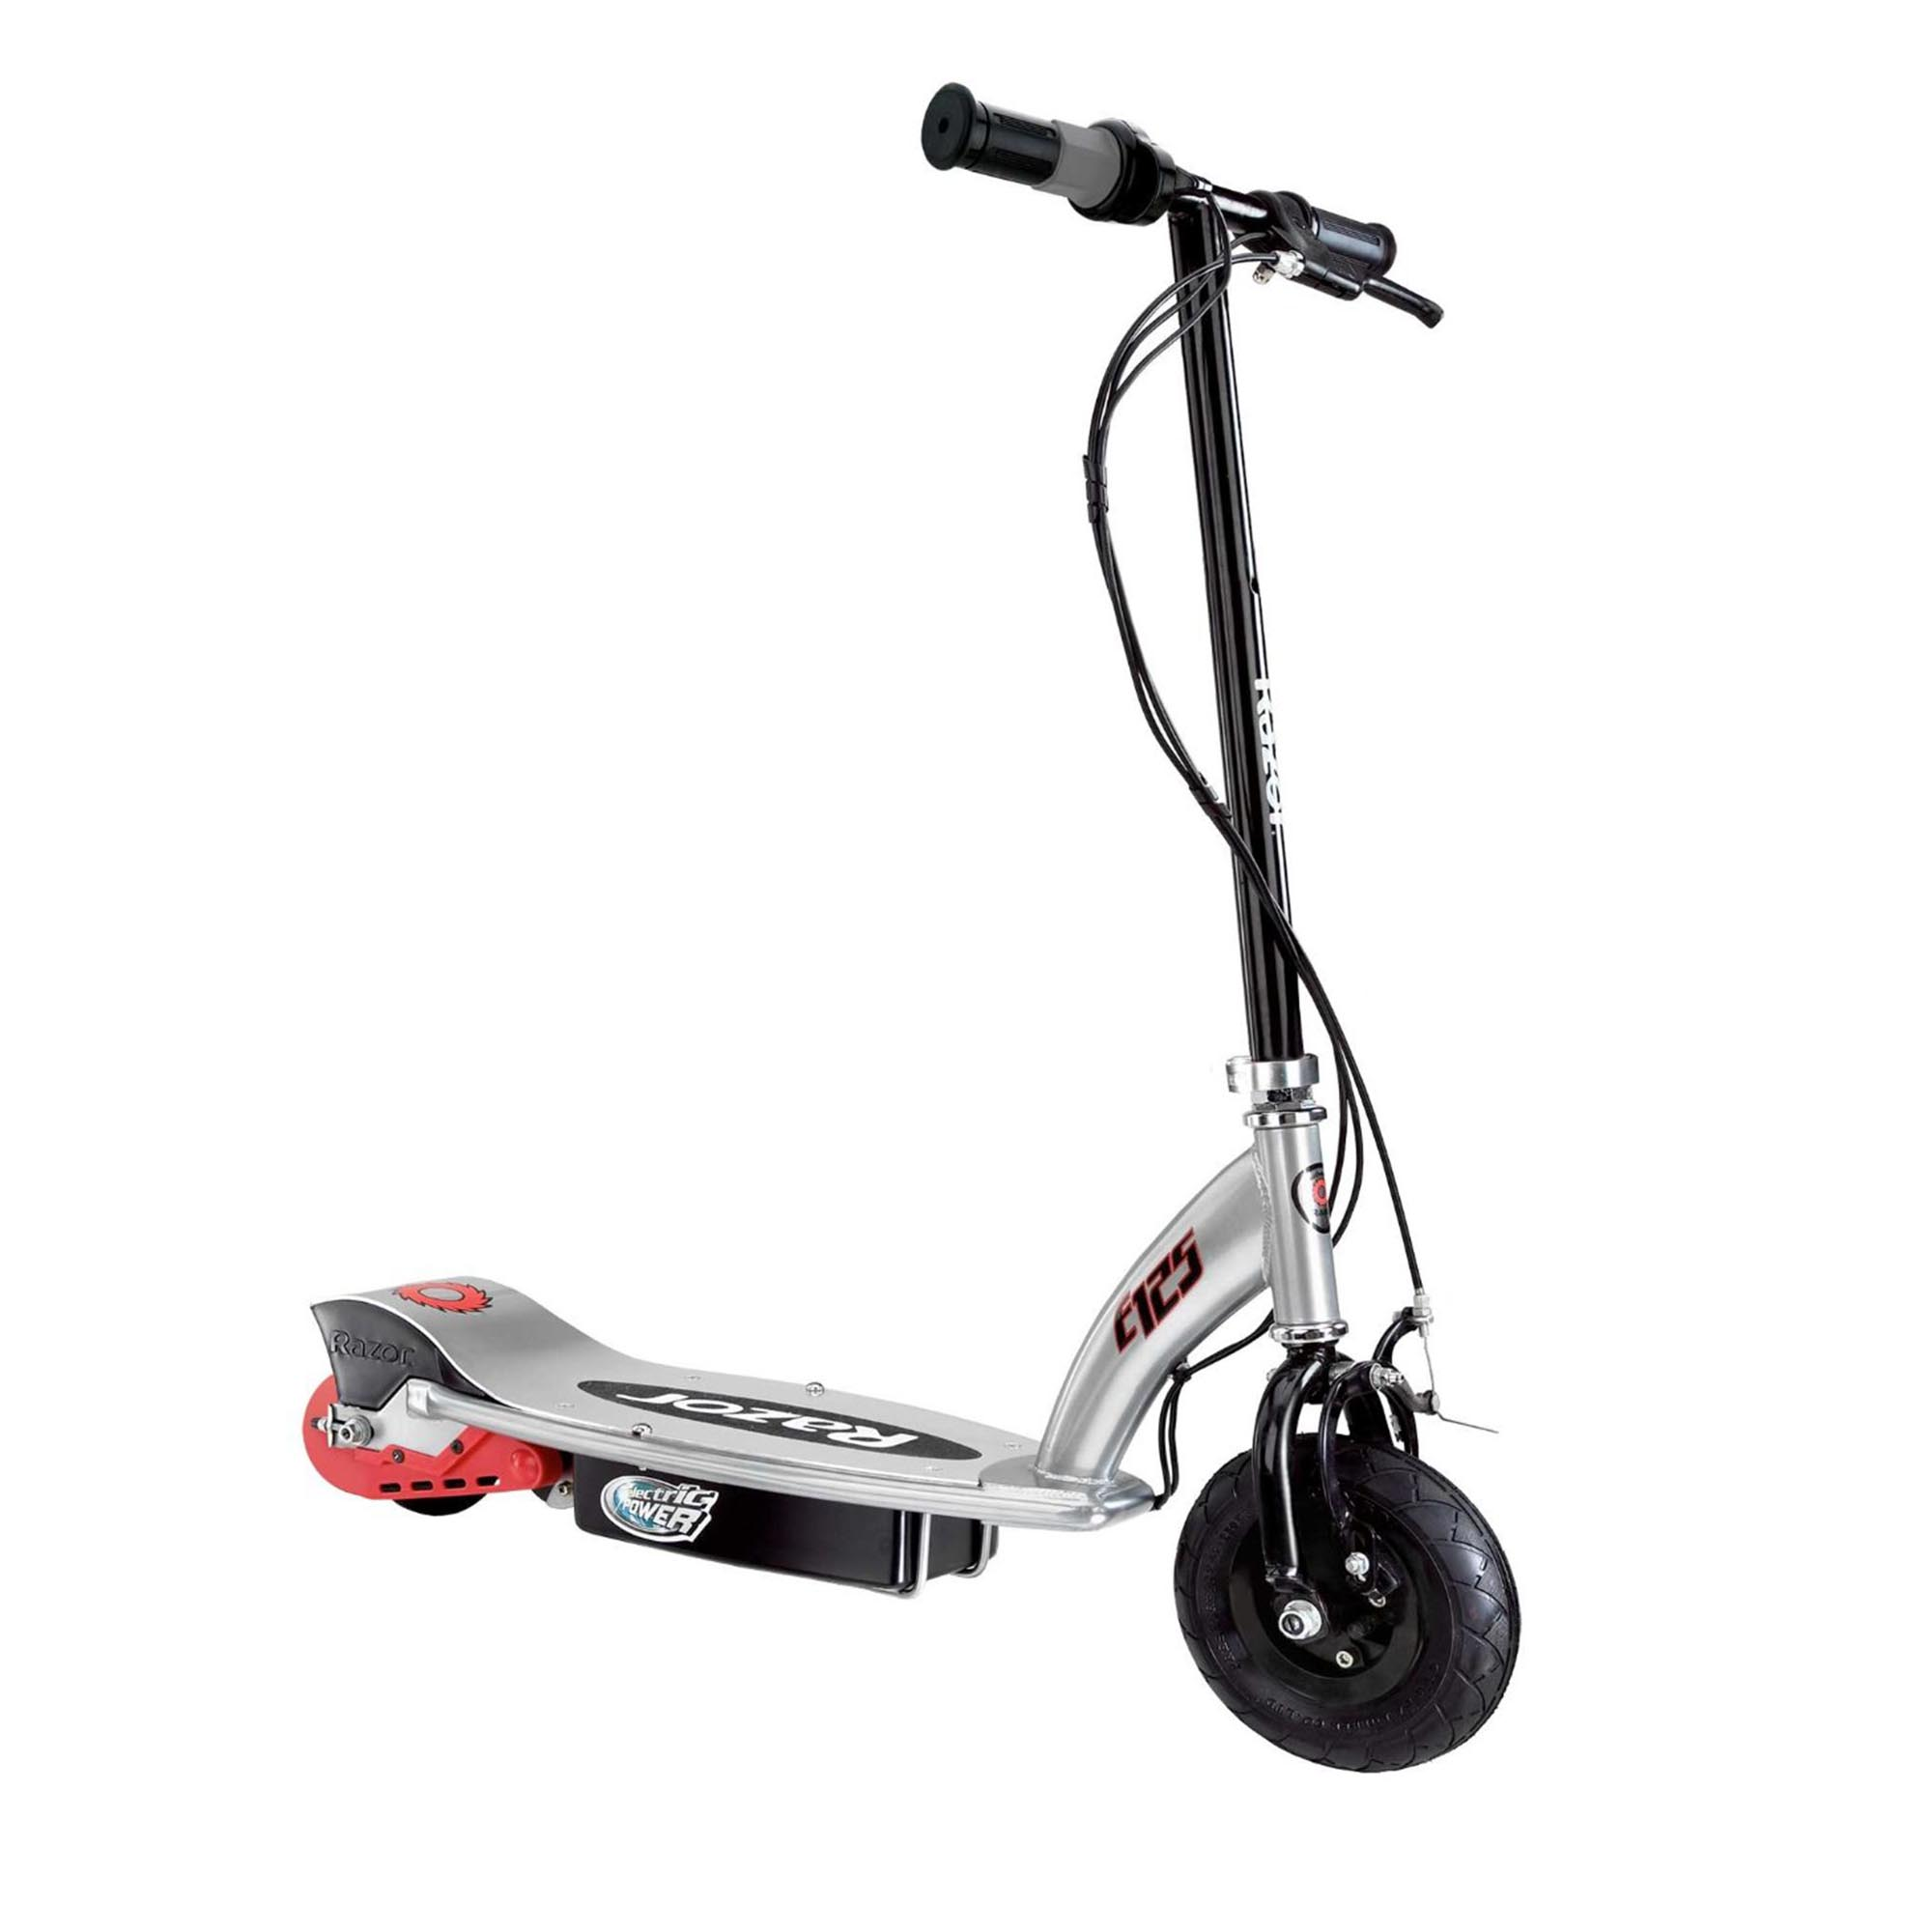 razor e125 motorized 24 volt rechargeable battery kids electric scooter black ebay. Black Bedroom Furniture Sets. Home Design Ideas